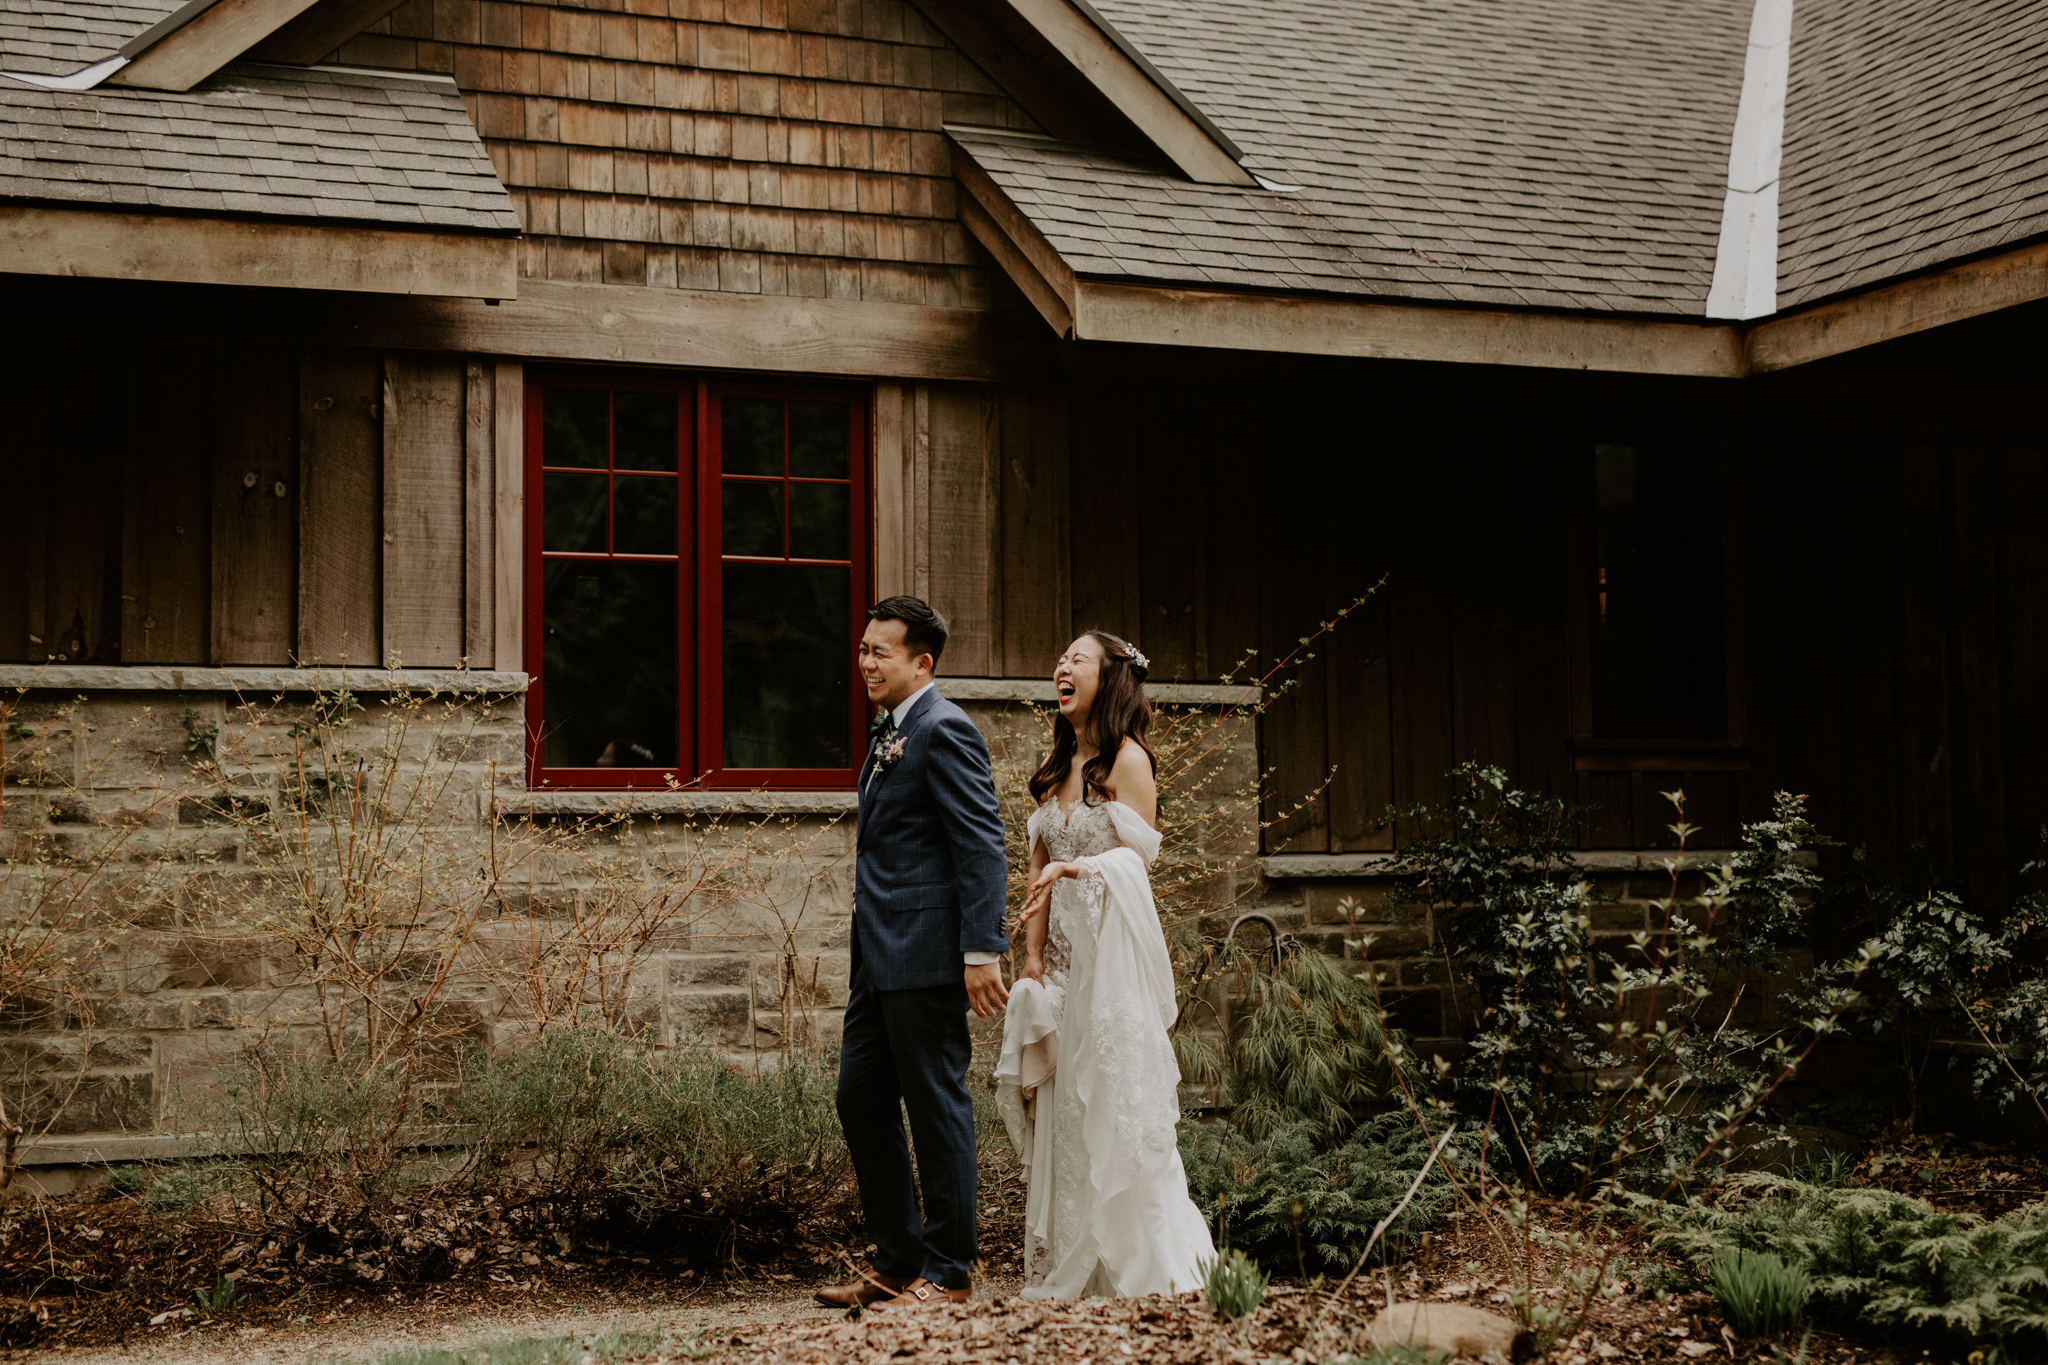 Serenity Cottage Wedding - bride and groom in front of stone cottage